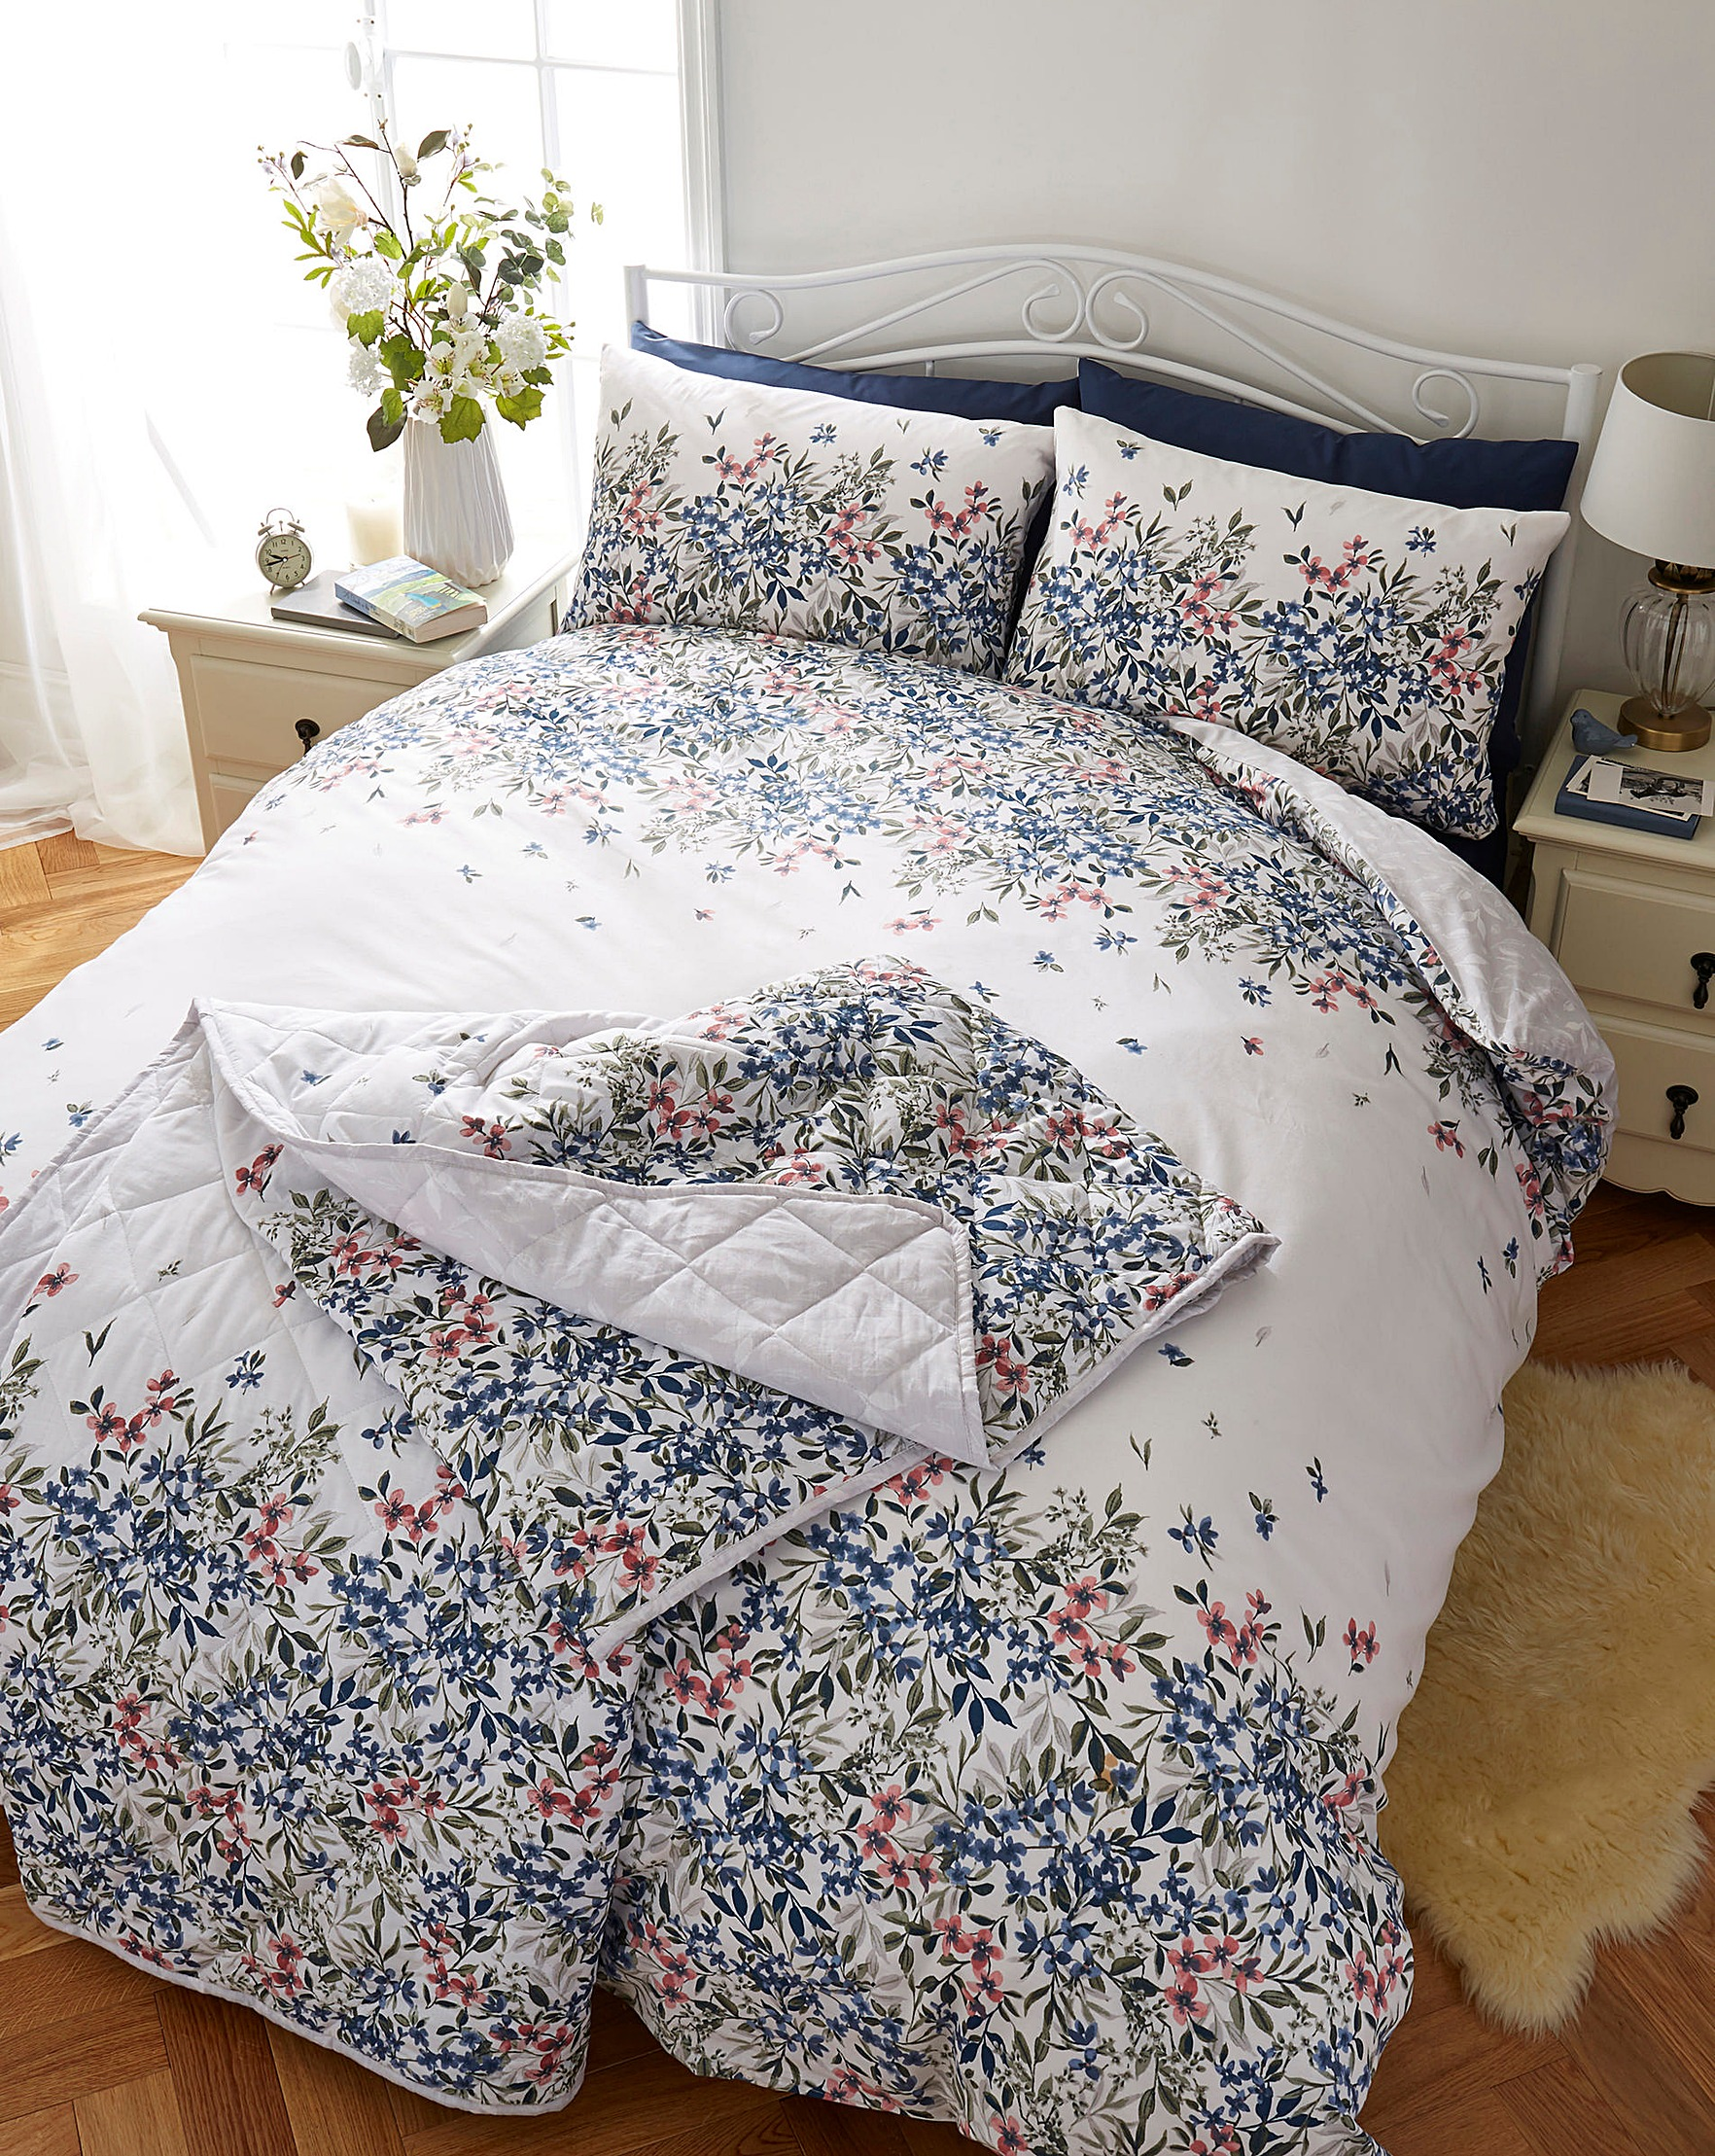 set willoughby textilewarehouse grey bath final uk duvet cover holly bed bianca co small chloe pleats collections floral products chambray